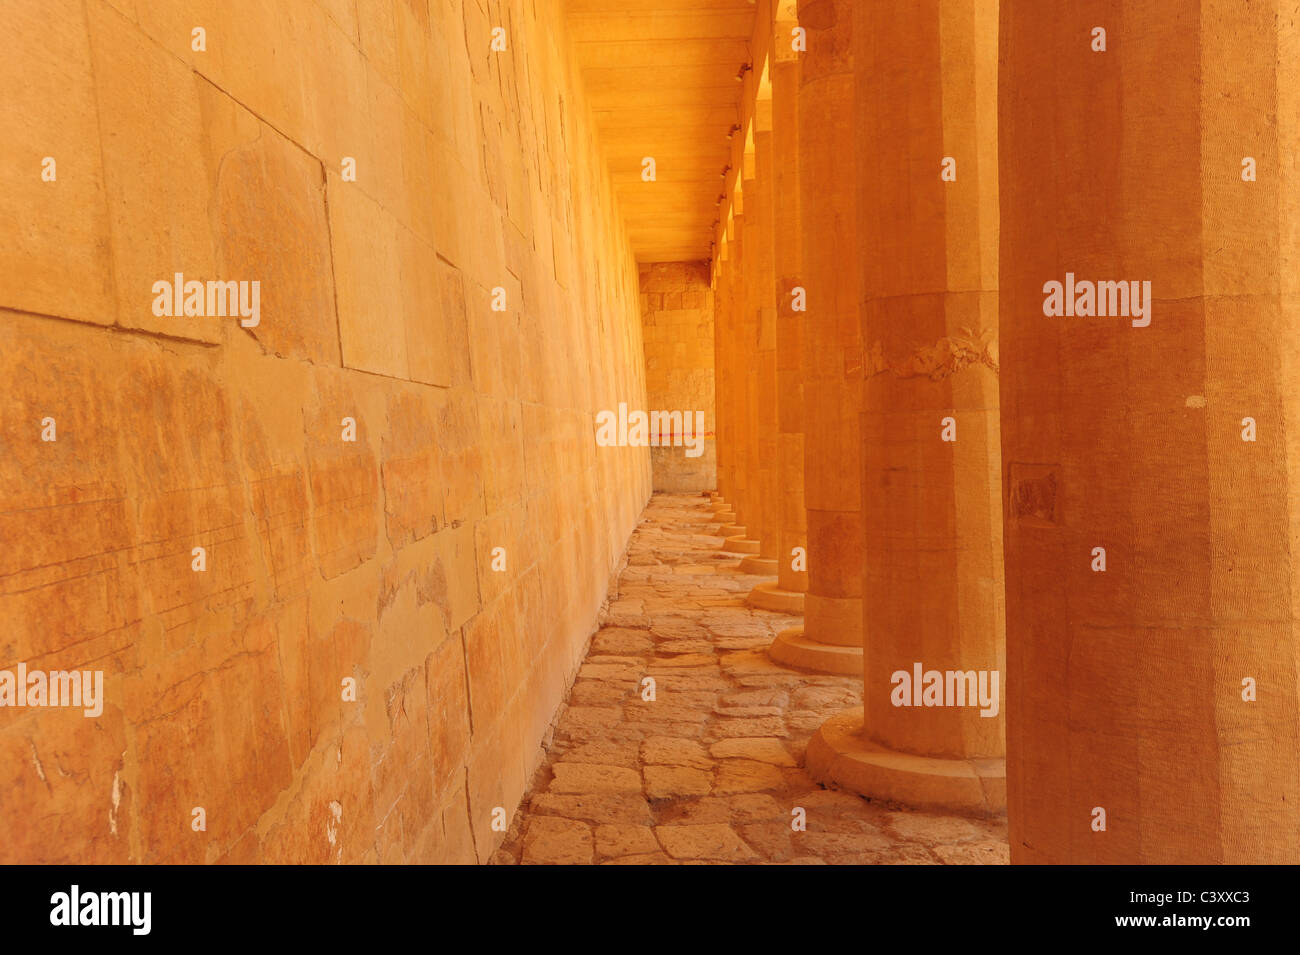 Africa Egypt Egyptian Luxor Valley of the Kings Queen Hatshepsut temple tomb columns pillars - Stock Image